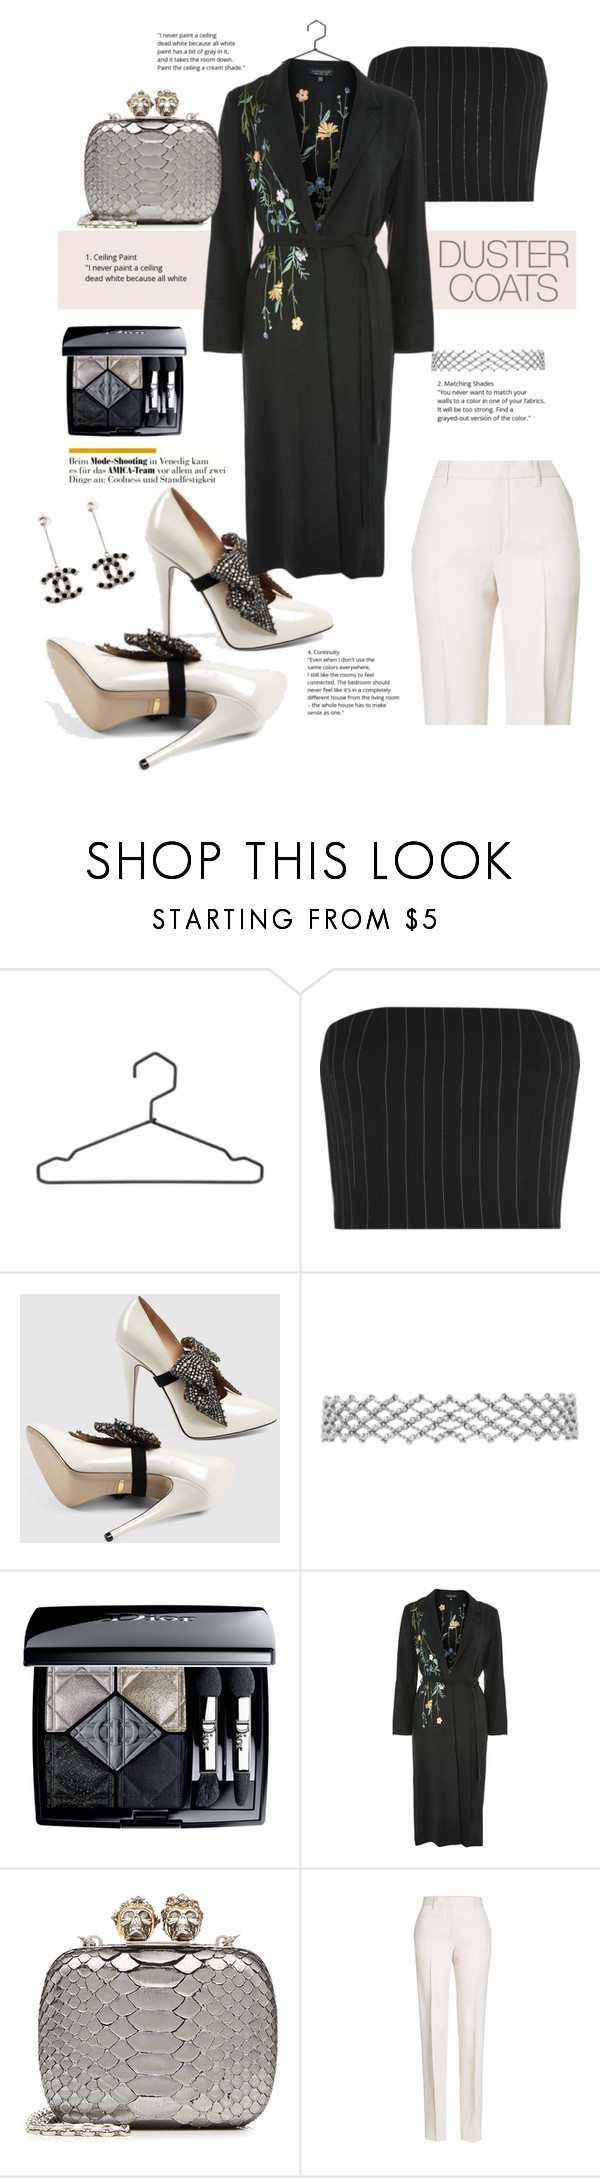 """""""Contest: duster coats"""" by thequeen-bee ❤ liked on Polyvore featuring Thierry Mugler, Gucci, Christian Dior, Topshop, Alexander McQueen, Jil Sander and Chanel"""